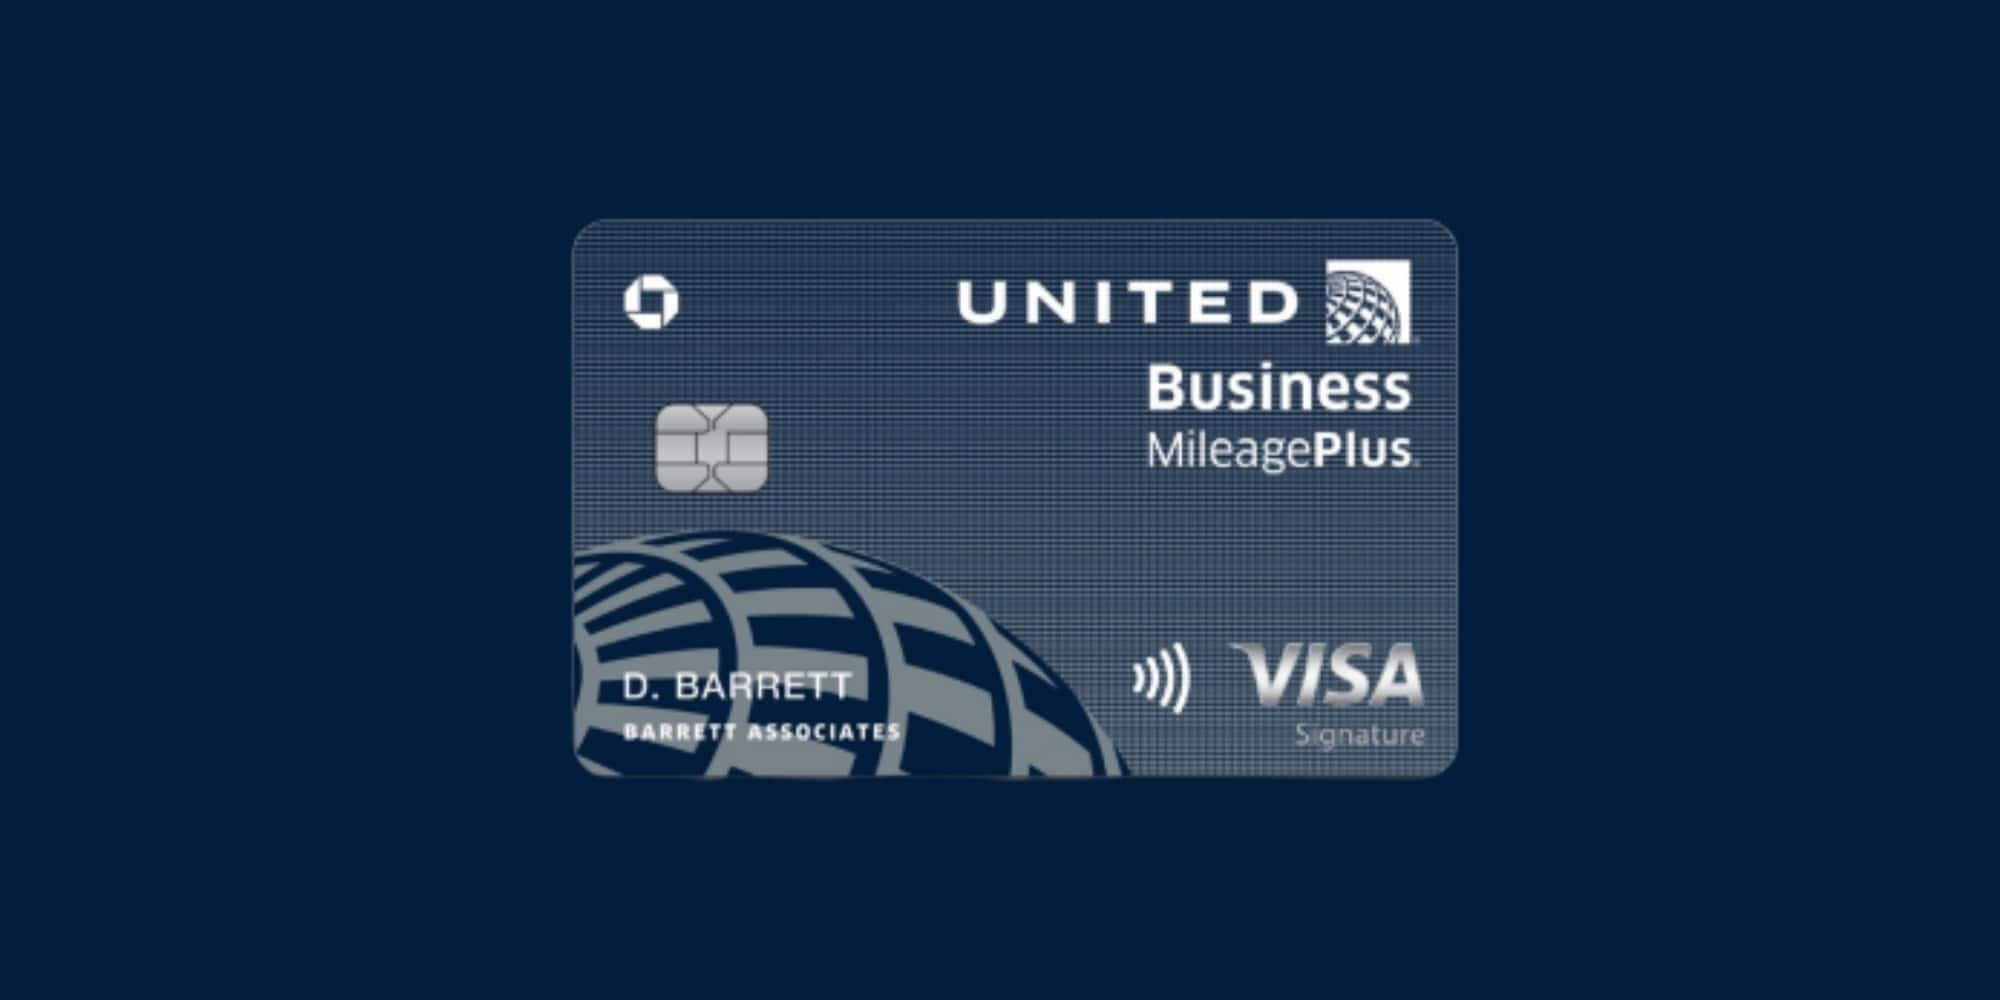 chase and united debut new business credit card